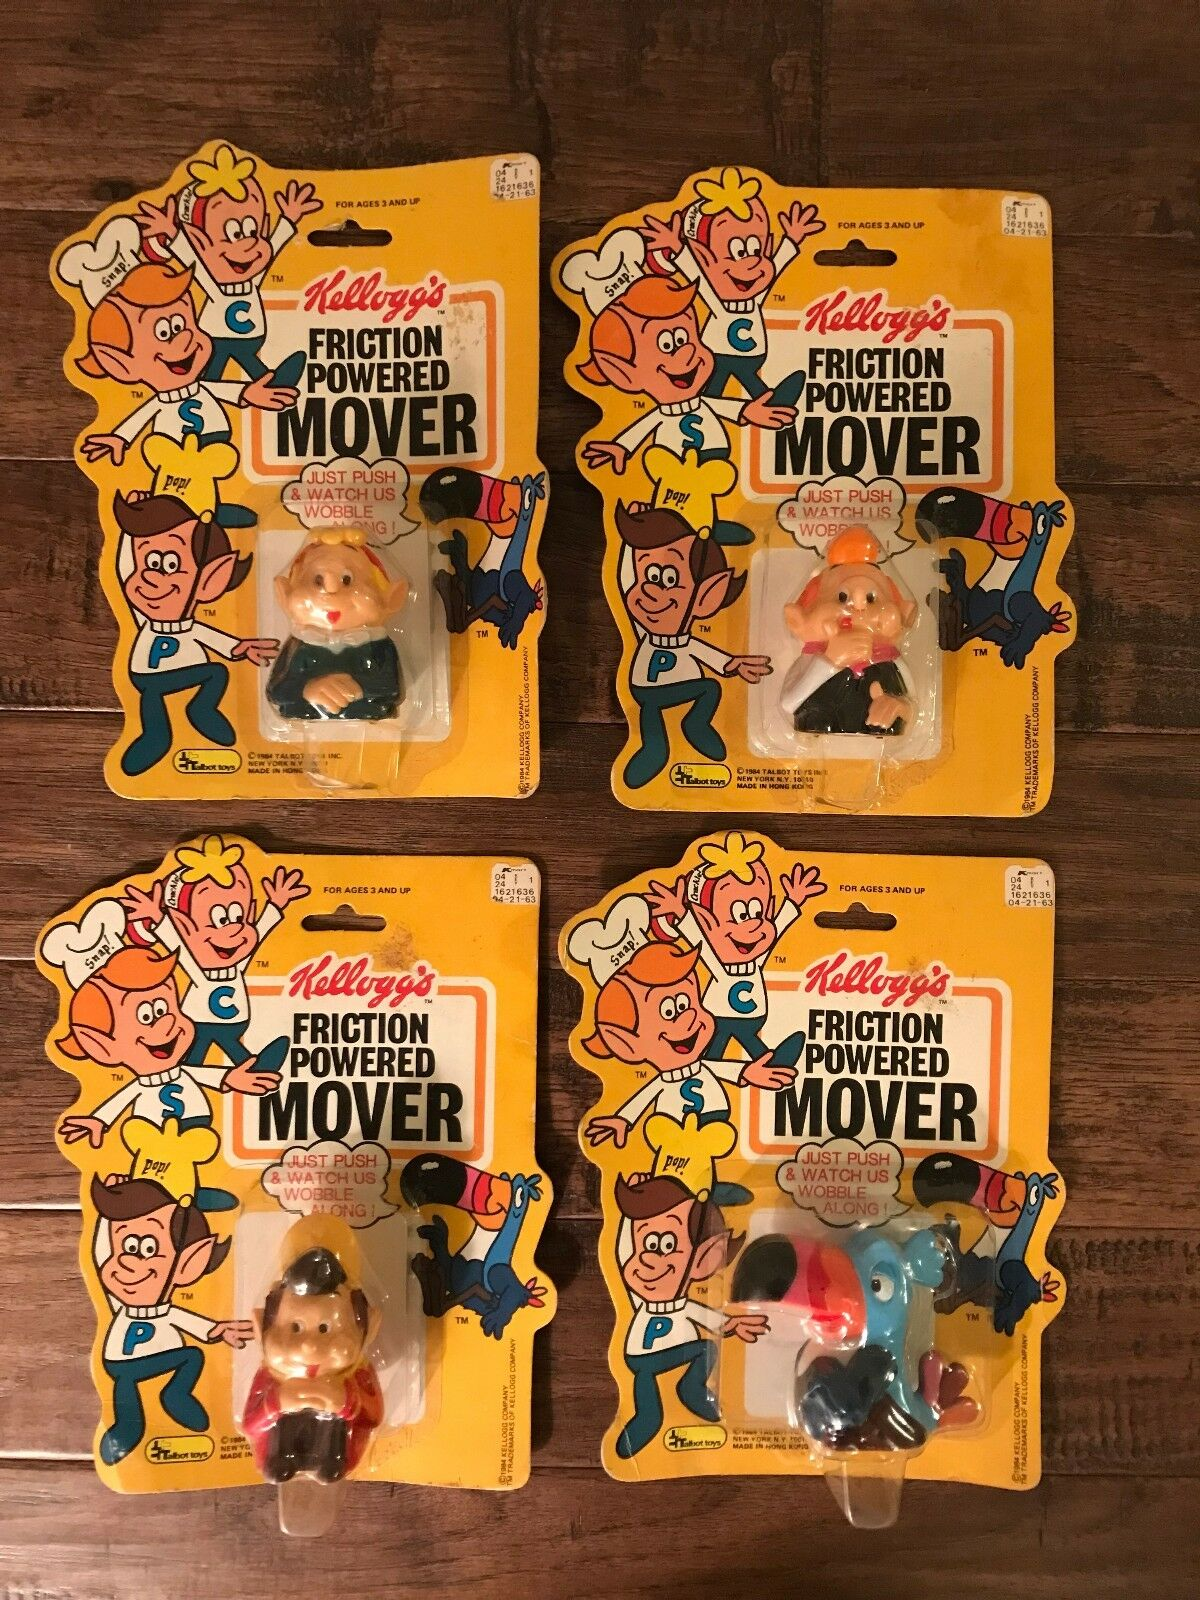 (4) {1984} Kellogg's  FRICTION POWERED MOVER  Figures, NEW  COMPLETE SET  RARE